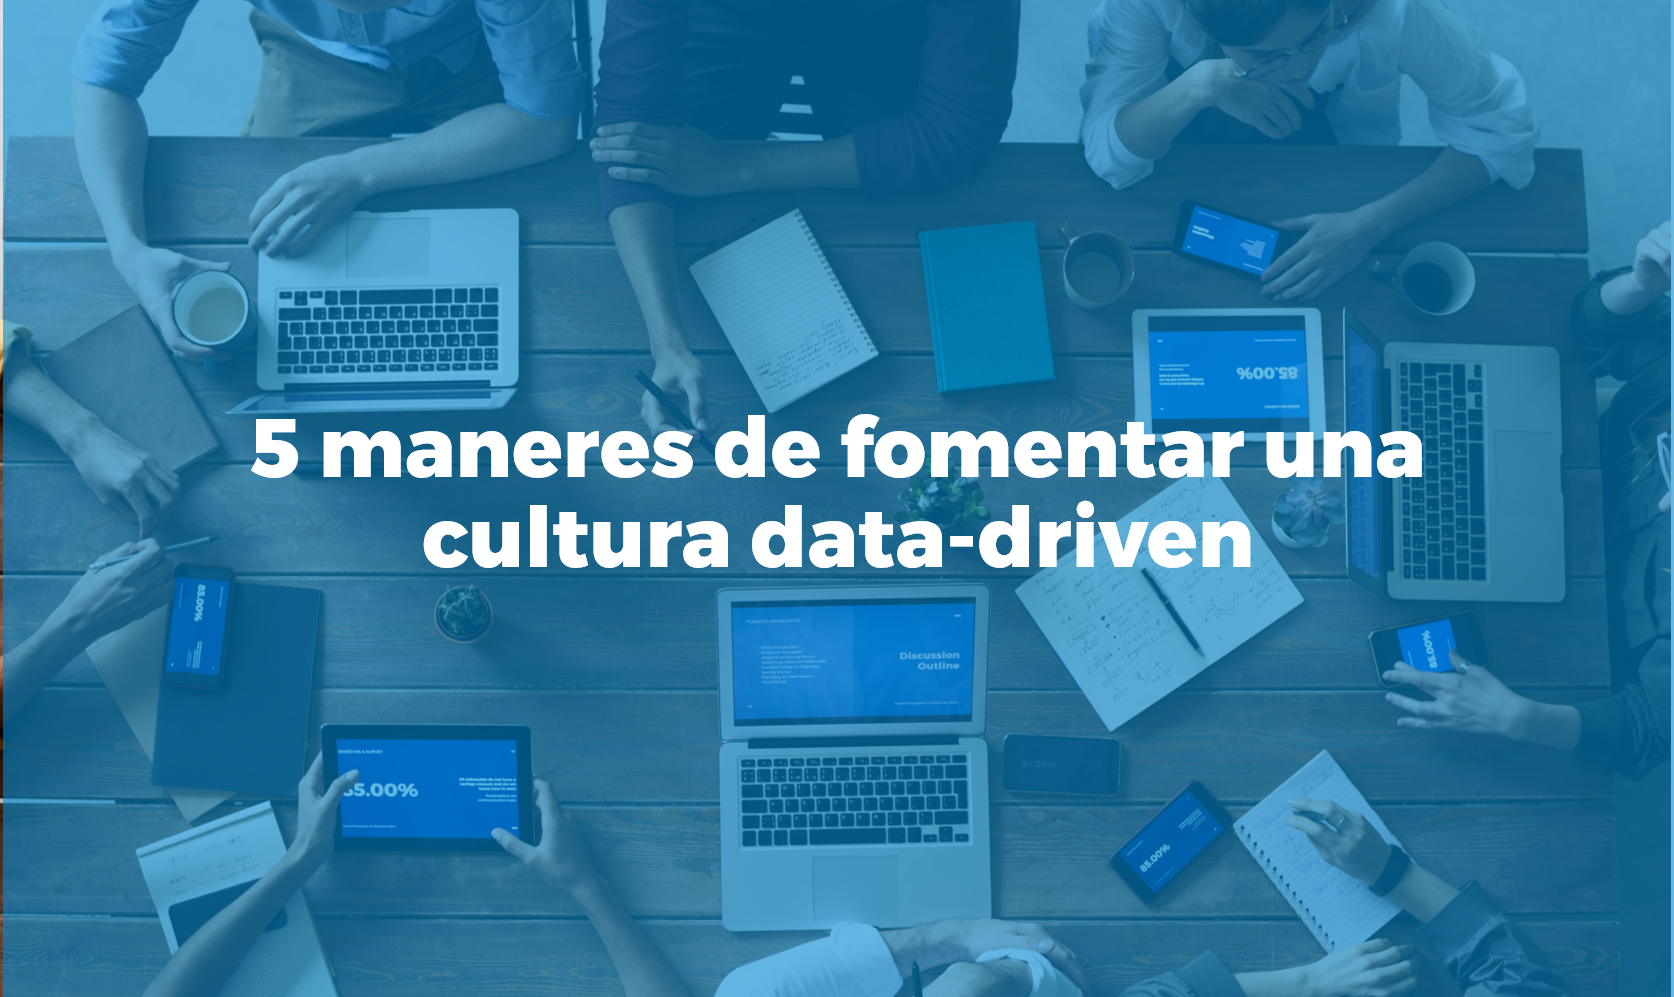 5 maneres de fomentar una cultura data driven